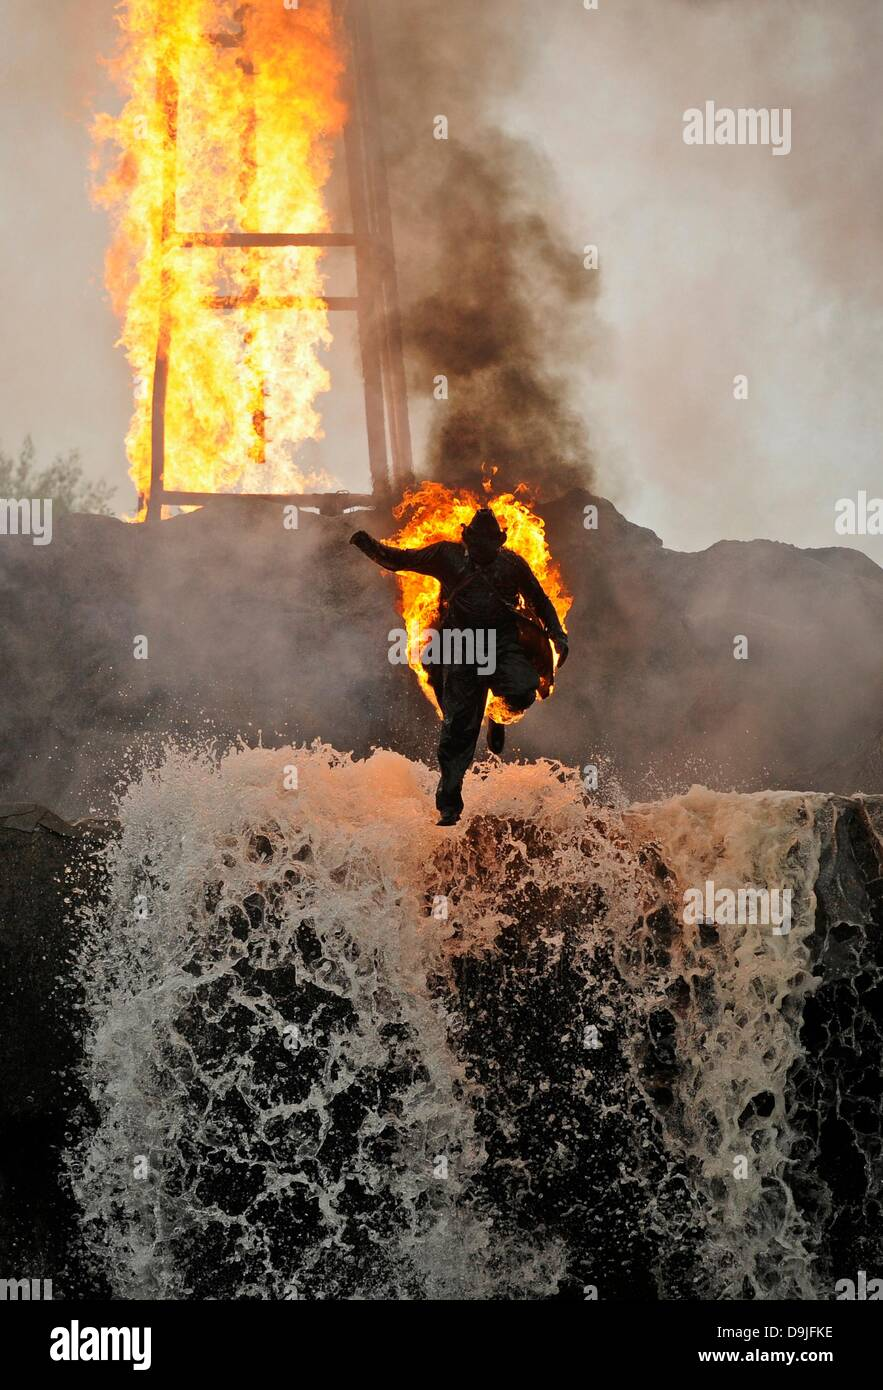 Lennestadt-Elspe, Germany. 20th June, 2013. A burning stuntman playing Ganoven Grinley jumps down a waterfall during - Stock Image